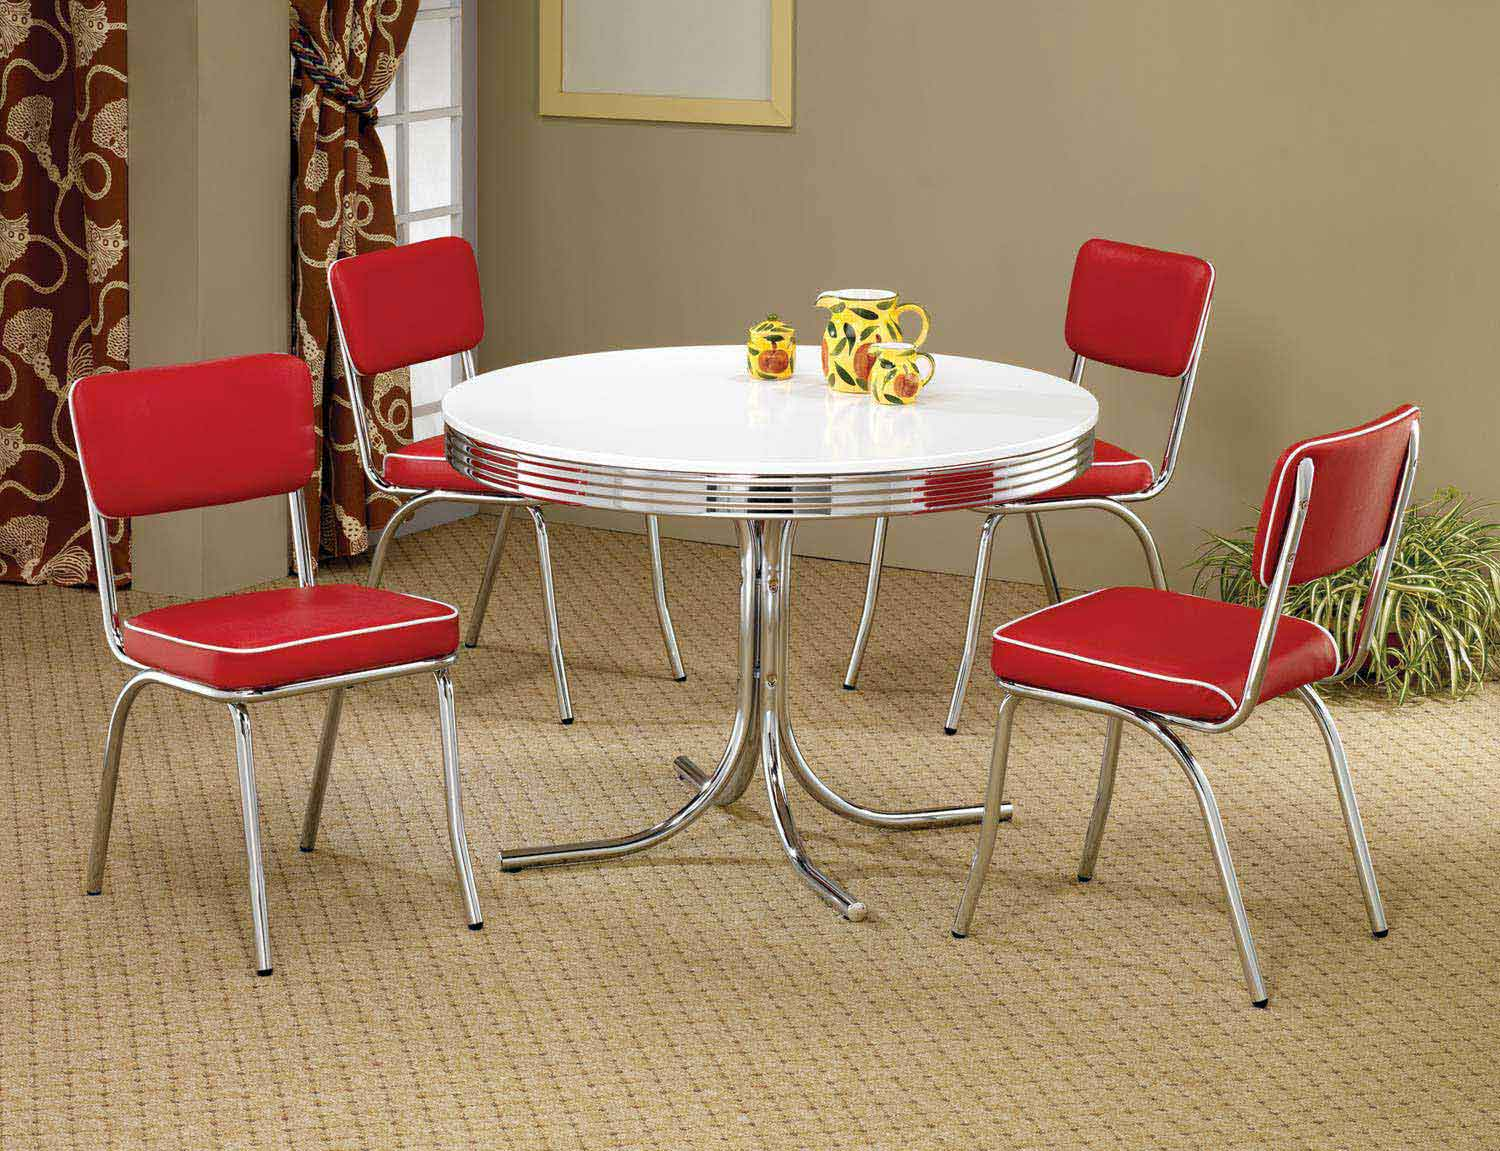 Coaster Mix & Match Round Retro Dining Set - Red Chair